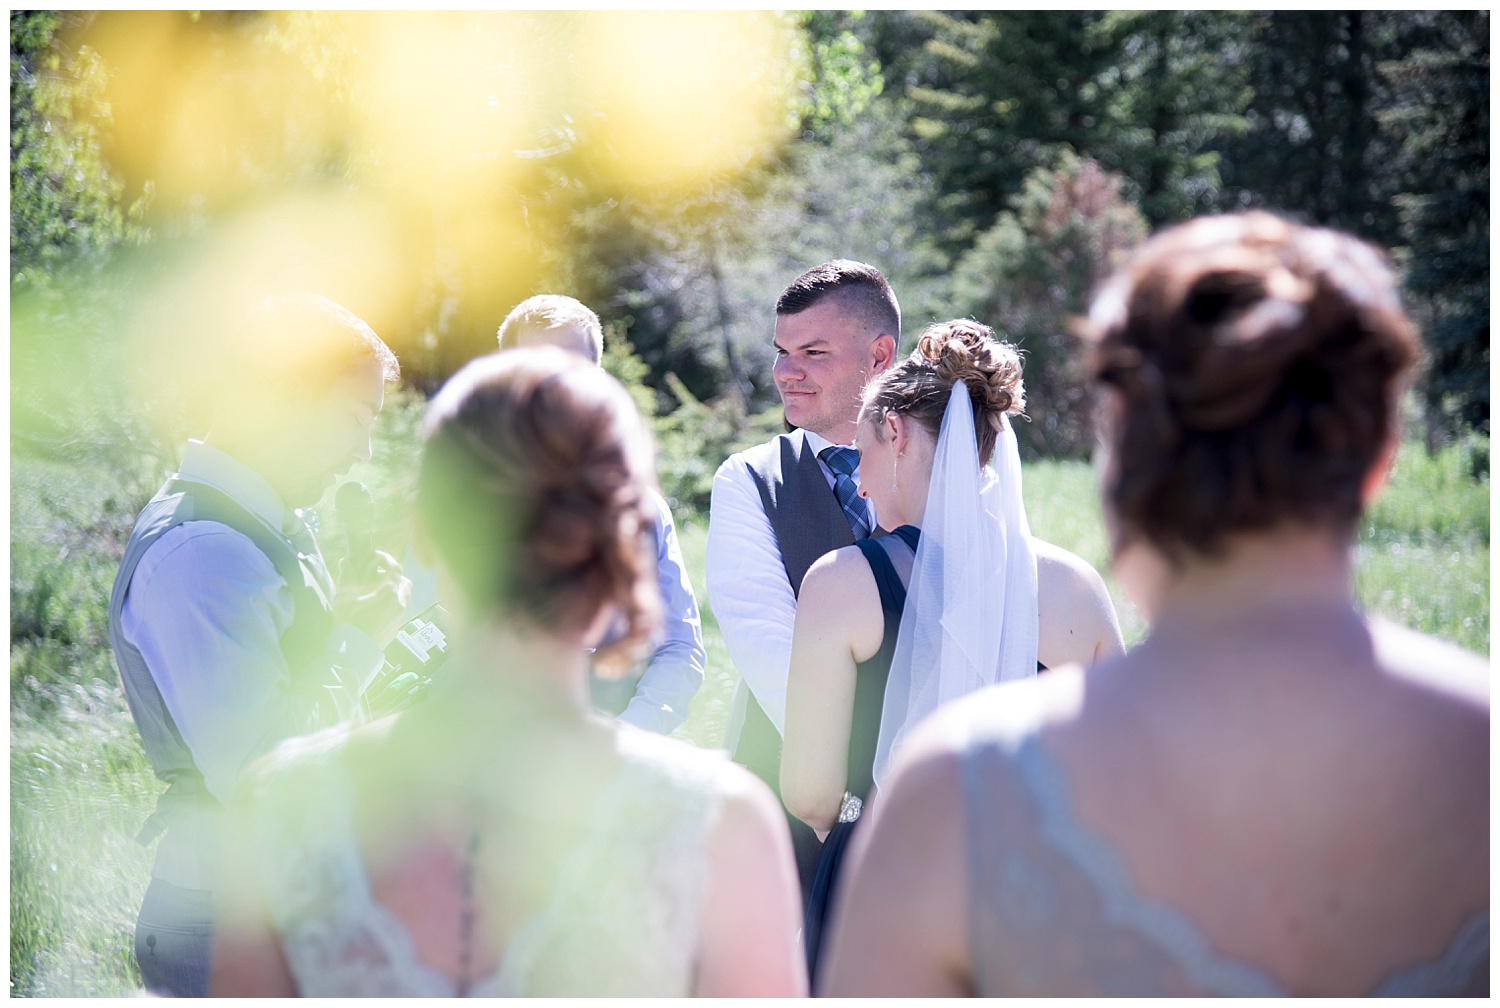 Adventure_Colorado_Wedding_Photographer_Intimate_Weddings_Photography_035.jpg